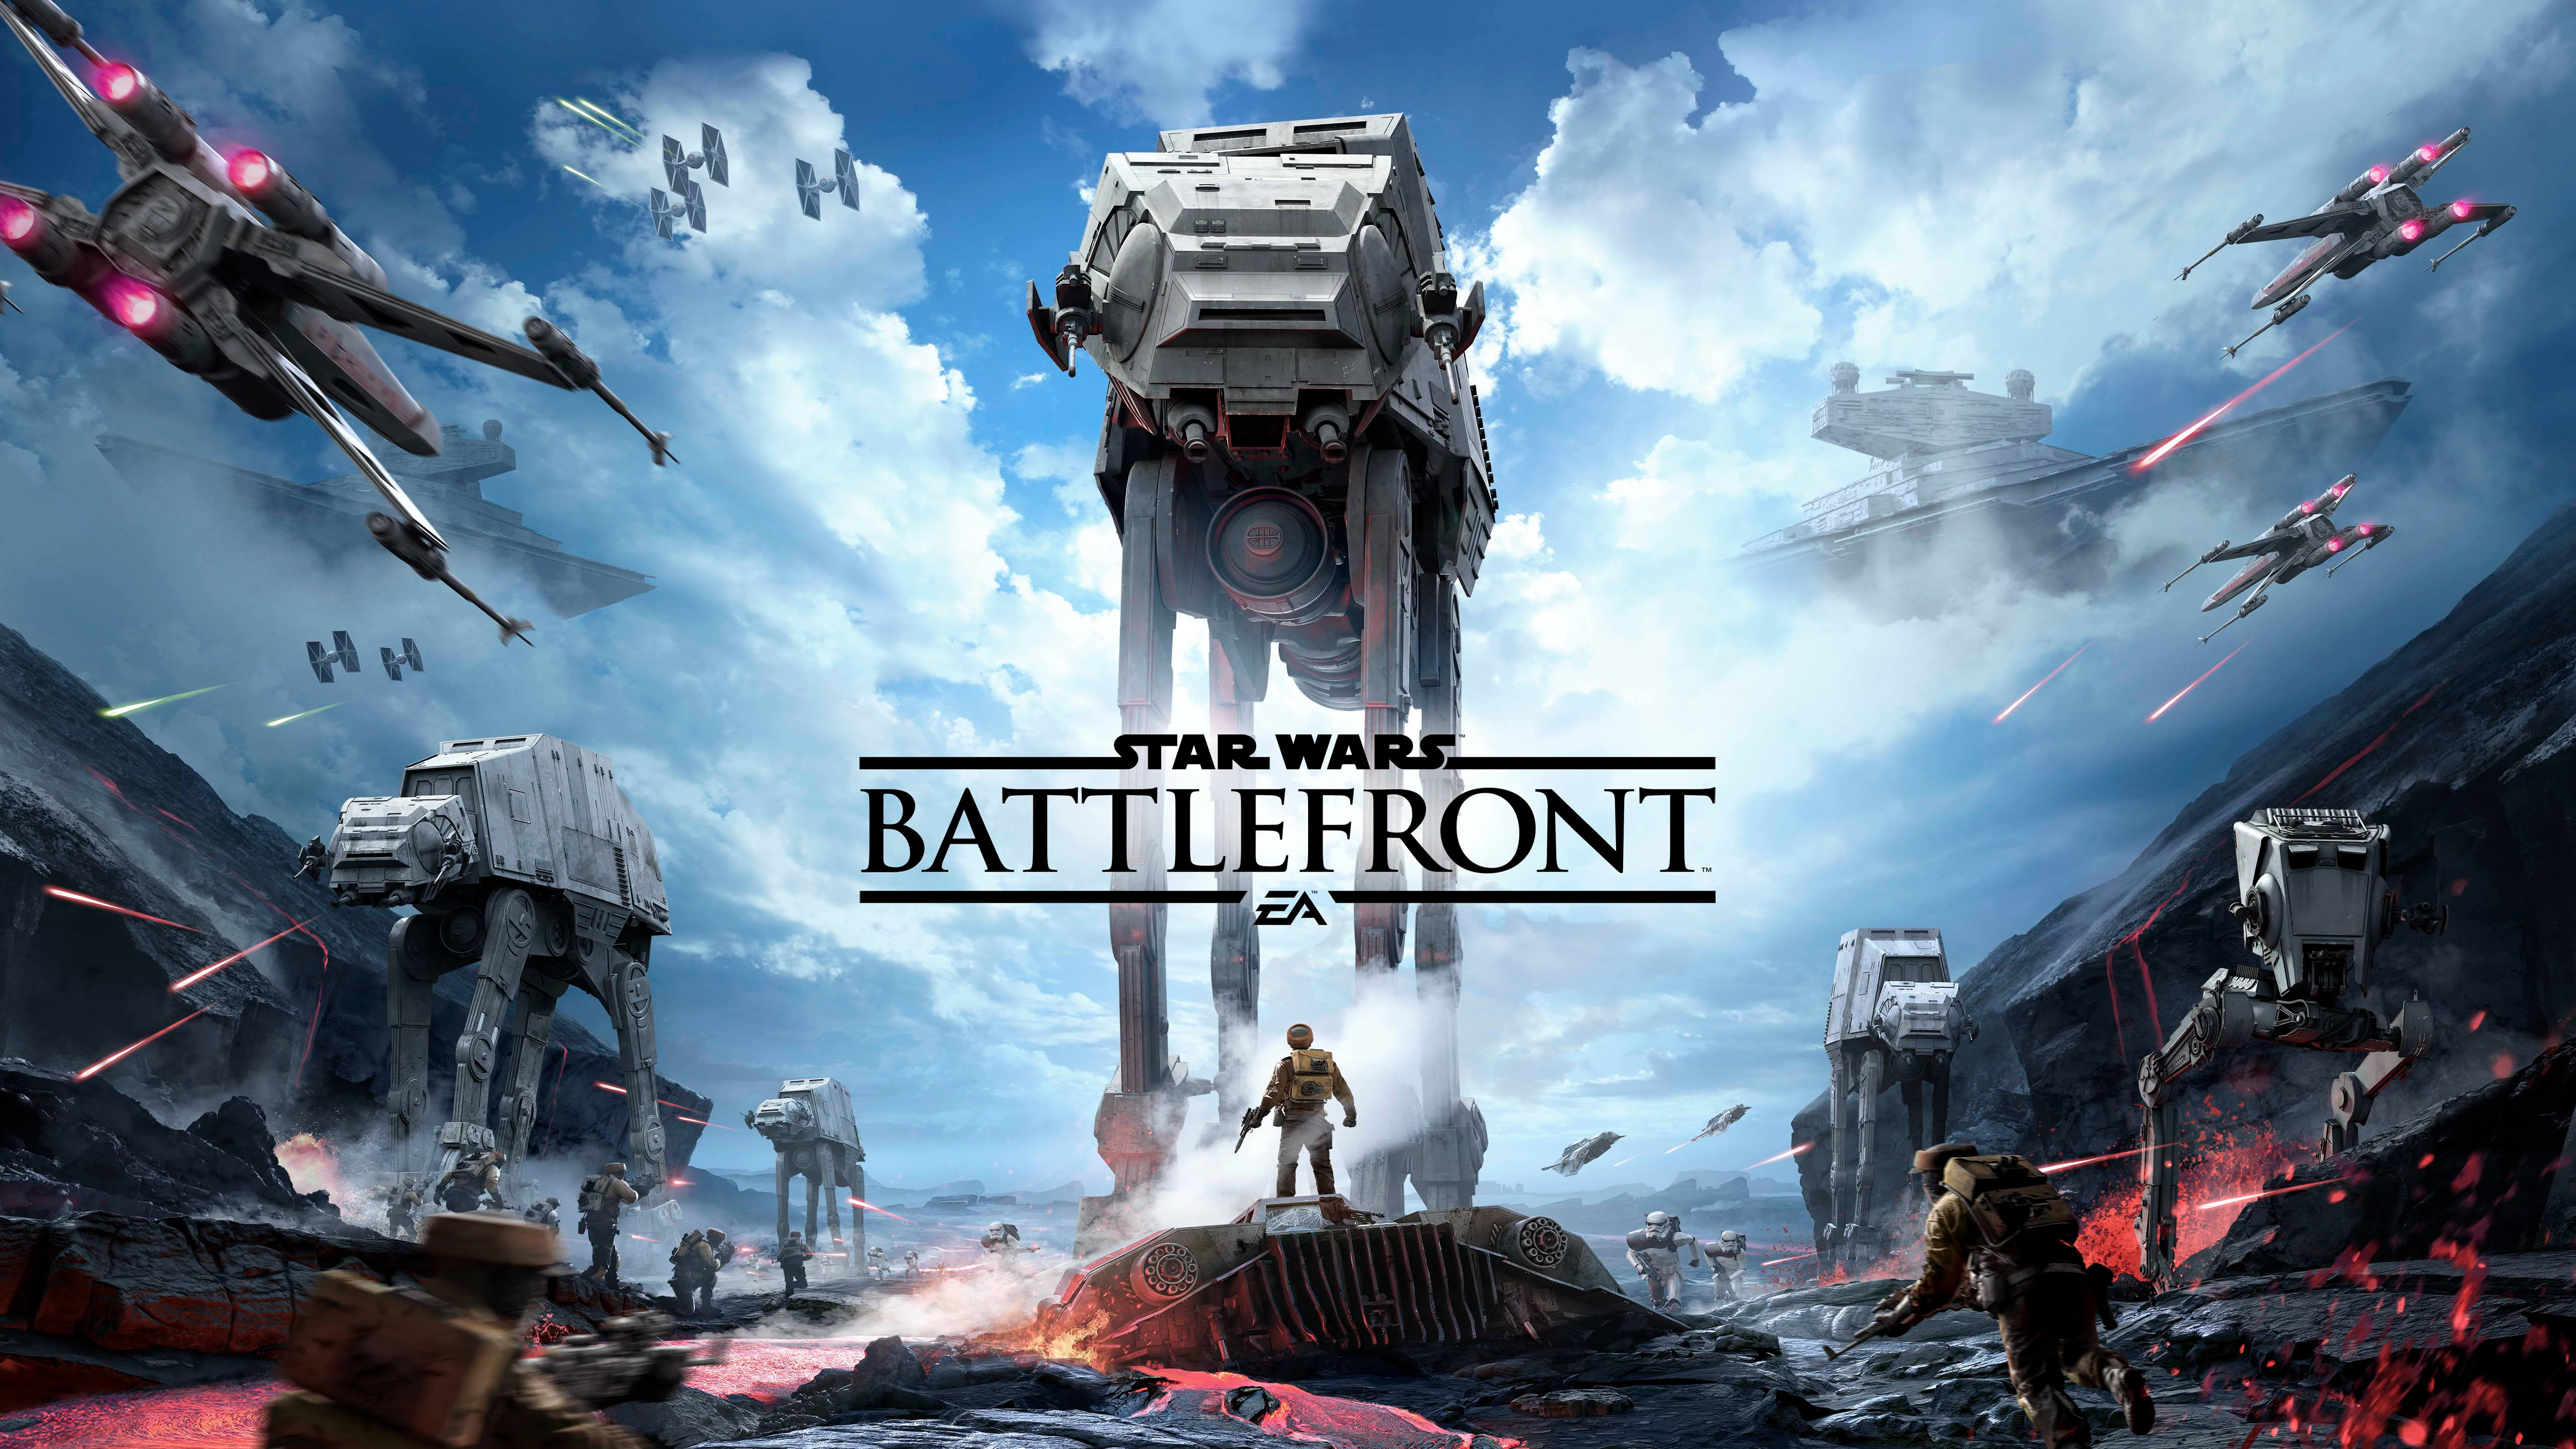 Star Wars Battlefront Dice Wallpaper